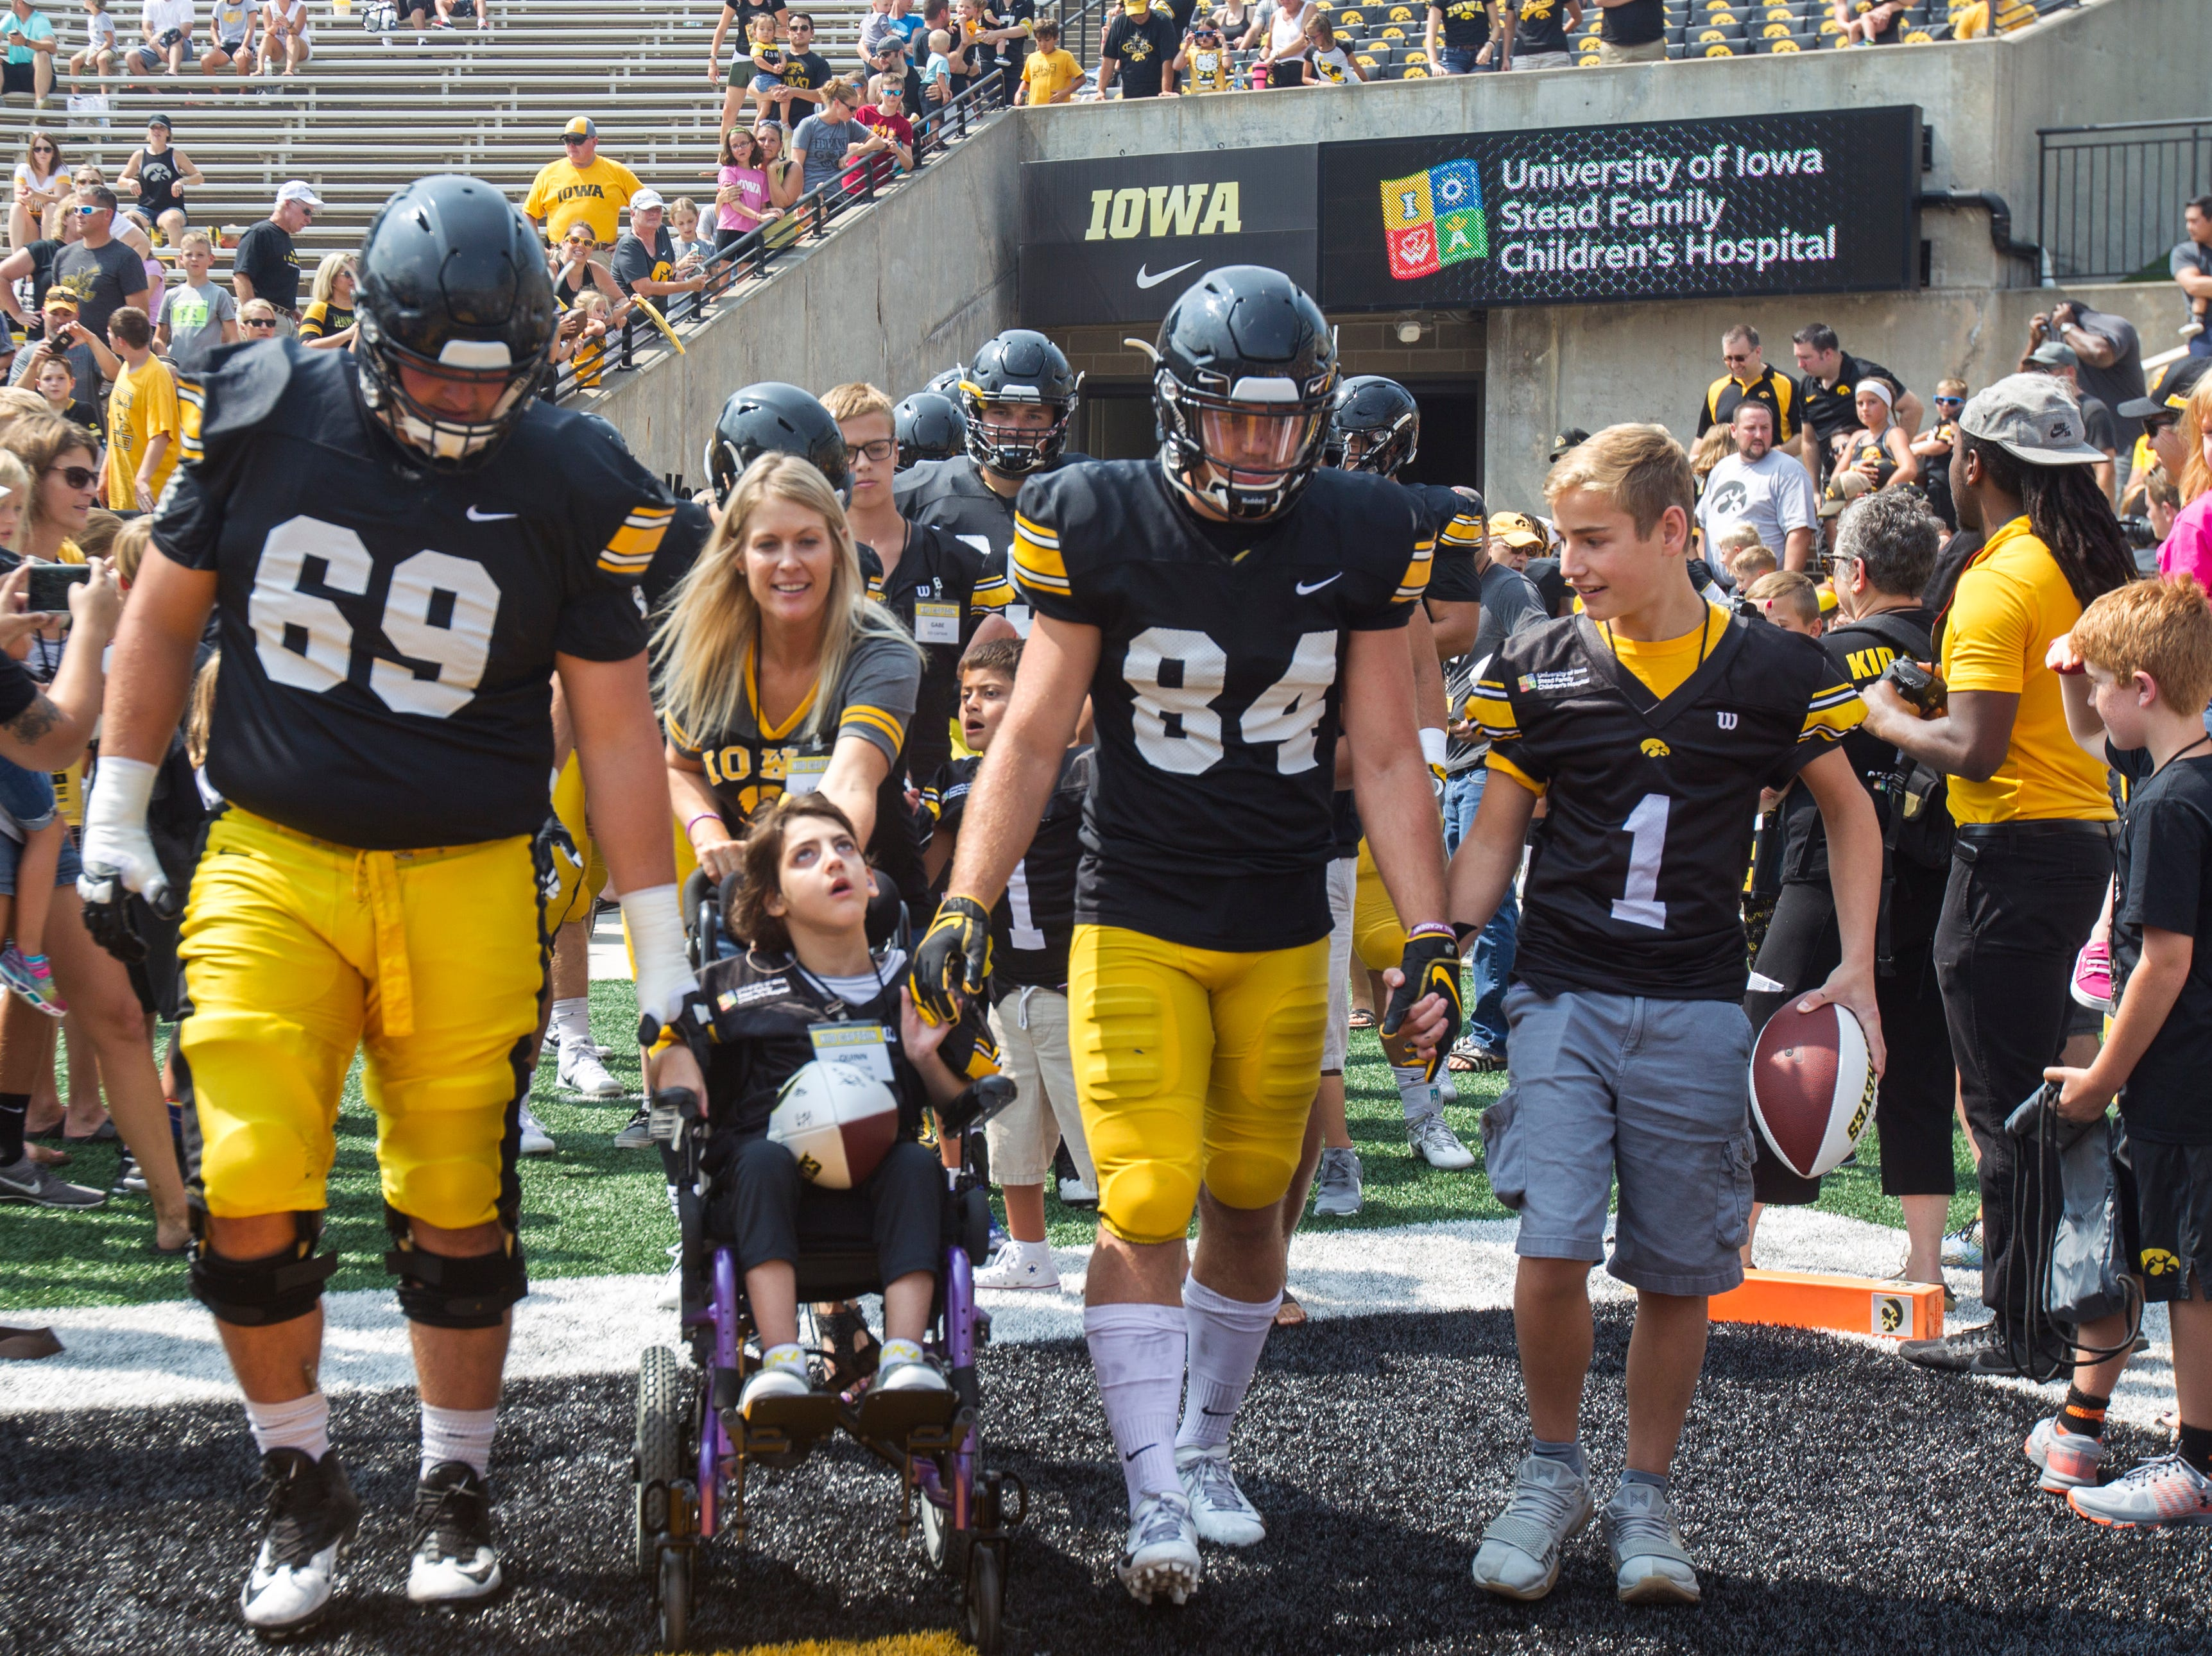 Iowa offensive lineman Keegan Render and wide receiver Nick Easley walk out of the tunnel with Kid Captains during a Kids Day practice on Saturday, Aug. 11, 2018, at Kinnick Stadium in Iowa City.